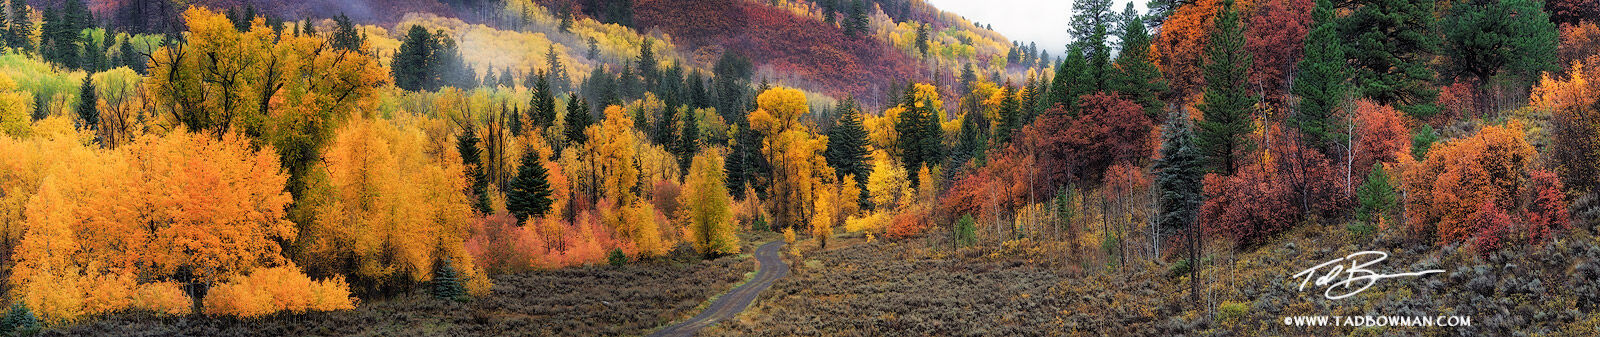 Colorado, Gunnison National forest, Aspen Tree photos, Colorado fall photos, pano,panorama,panoramas, fall, autumn, snow,orange,yellow,tree,trees,forest,autumnal, photo